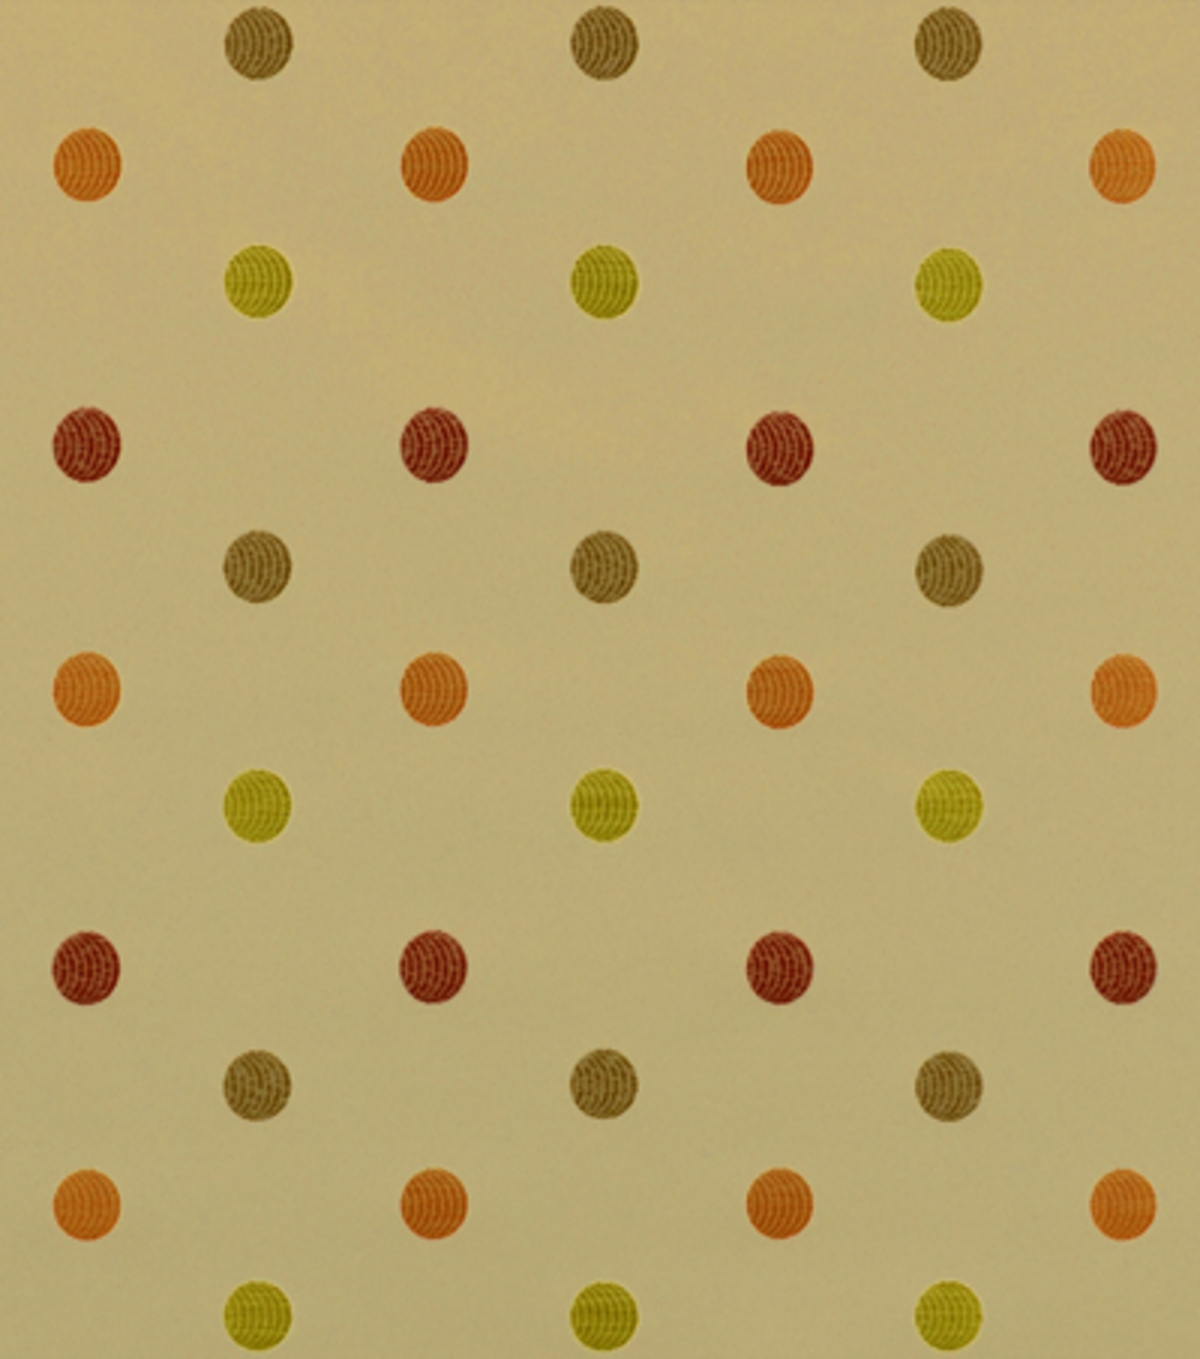 Home Decor 8\u0022x8\u0022 Fabric Swatch-Covington Lottie Dottie 214 Tropique